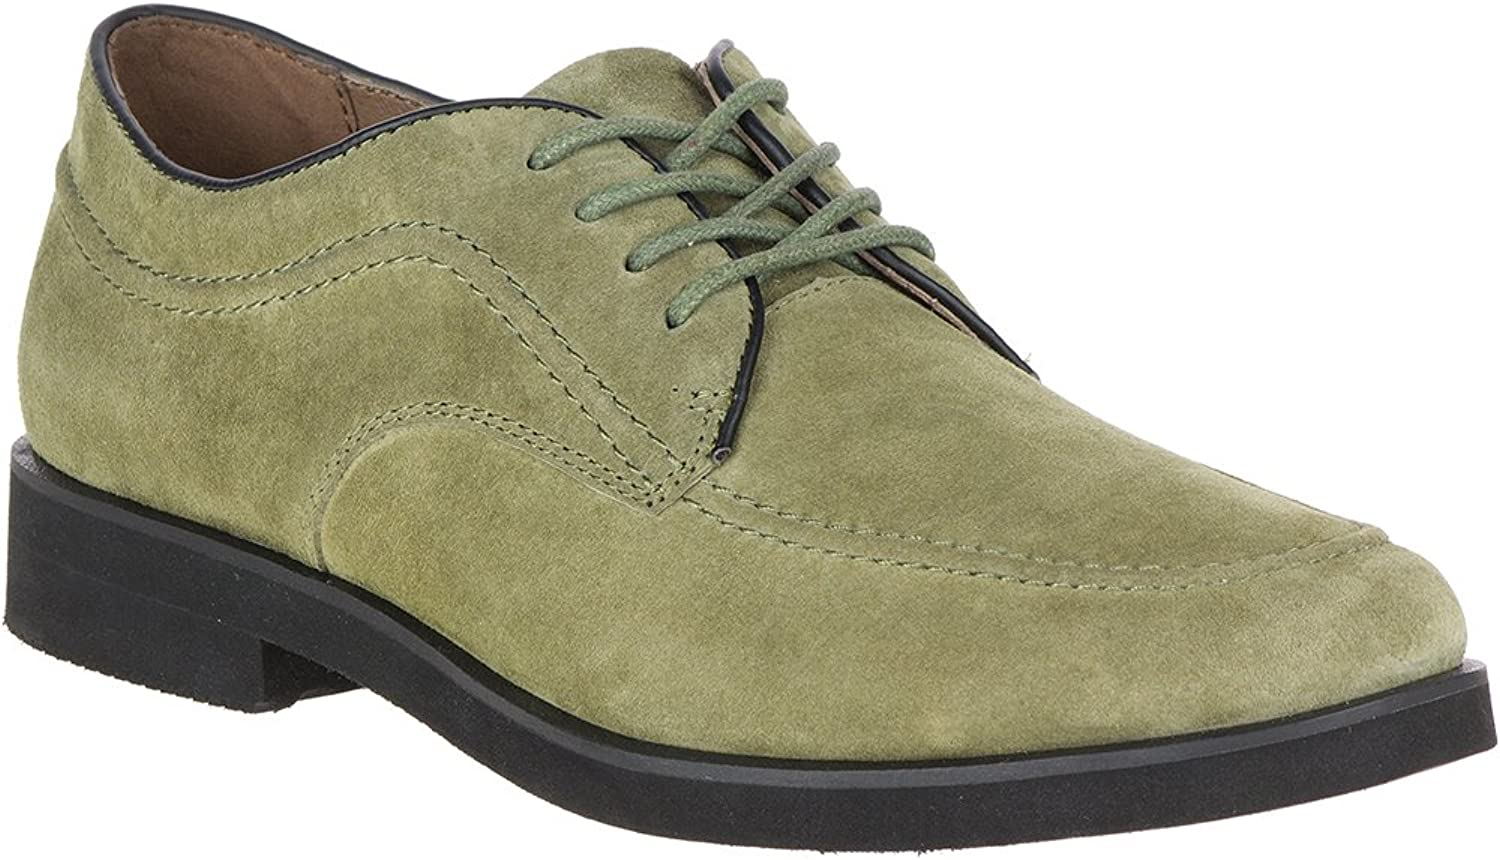 Hush Puppies Bracco MT Oxford Men